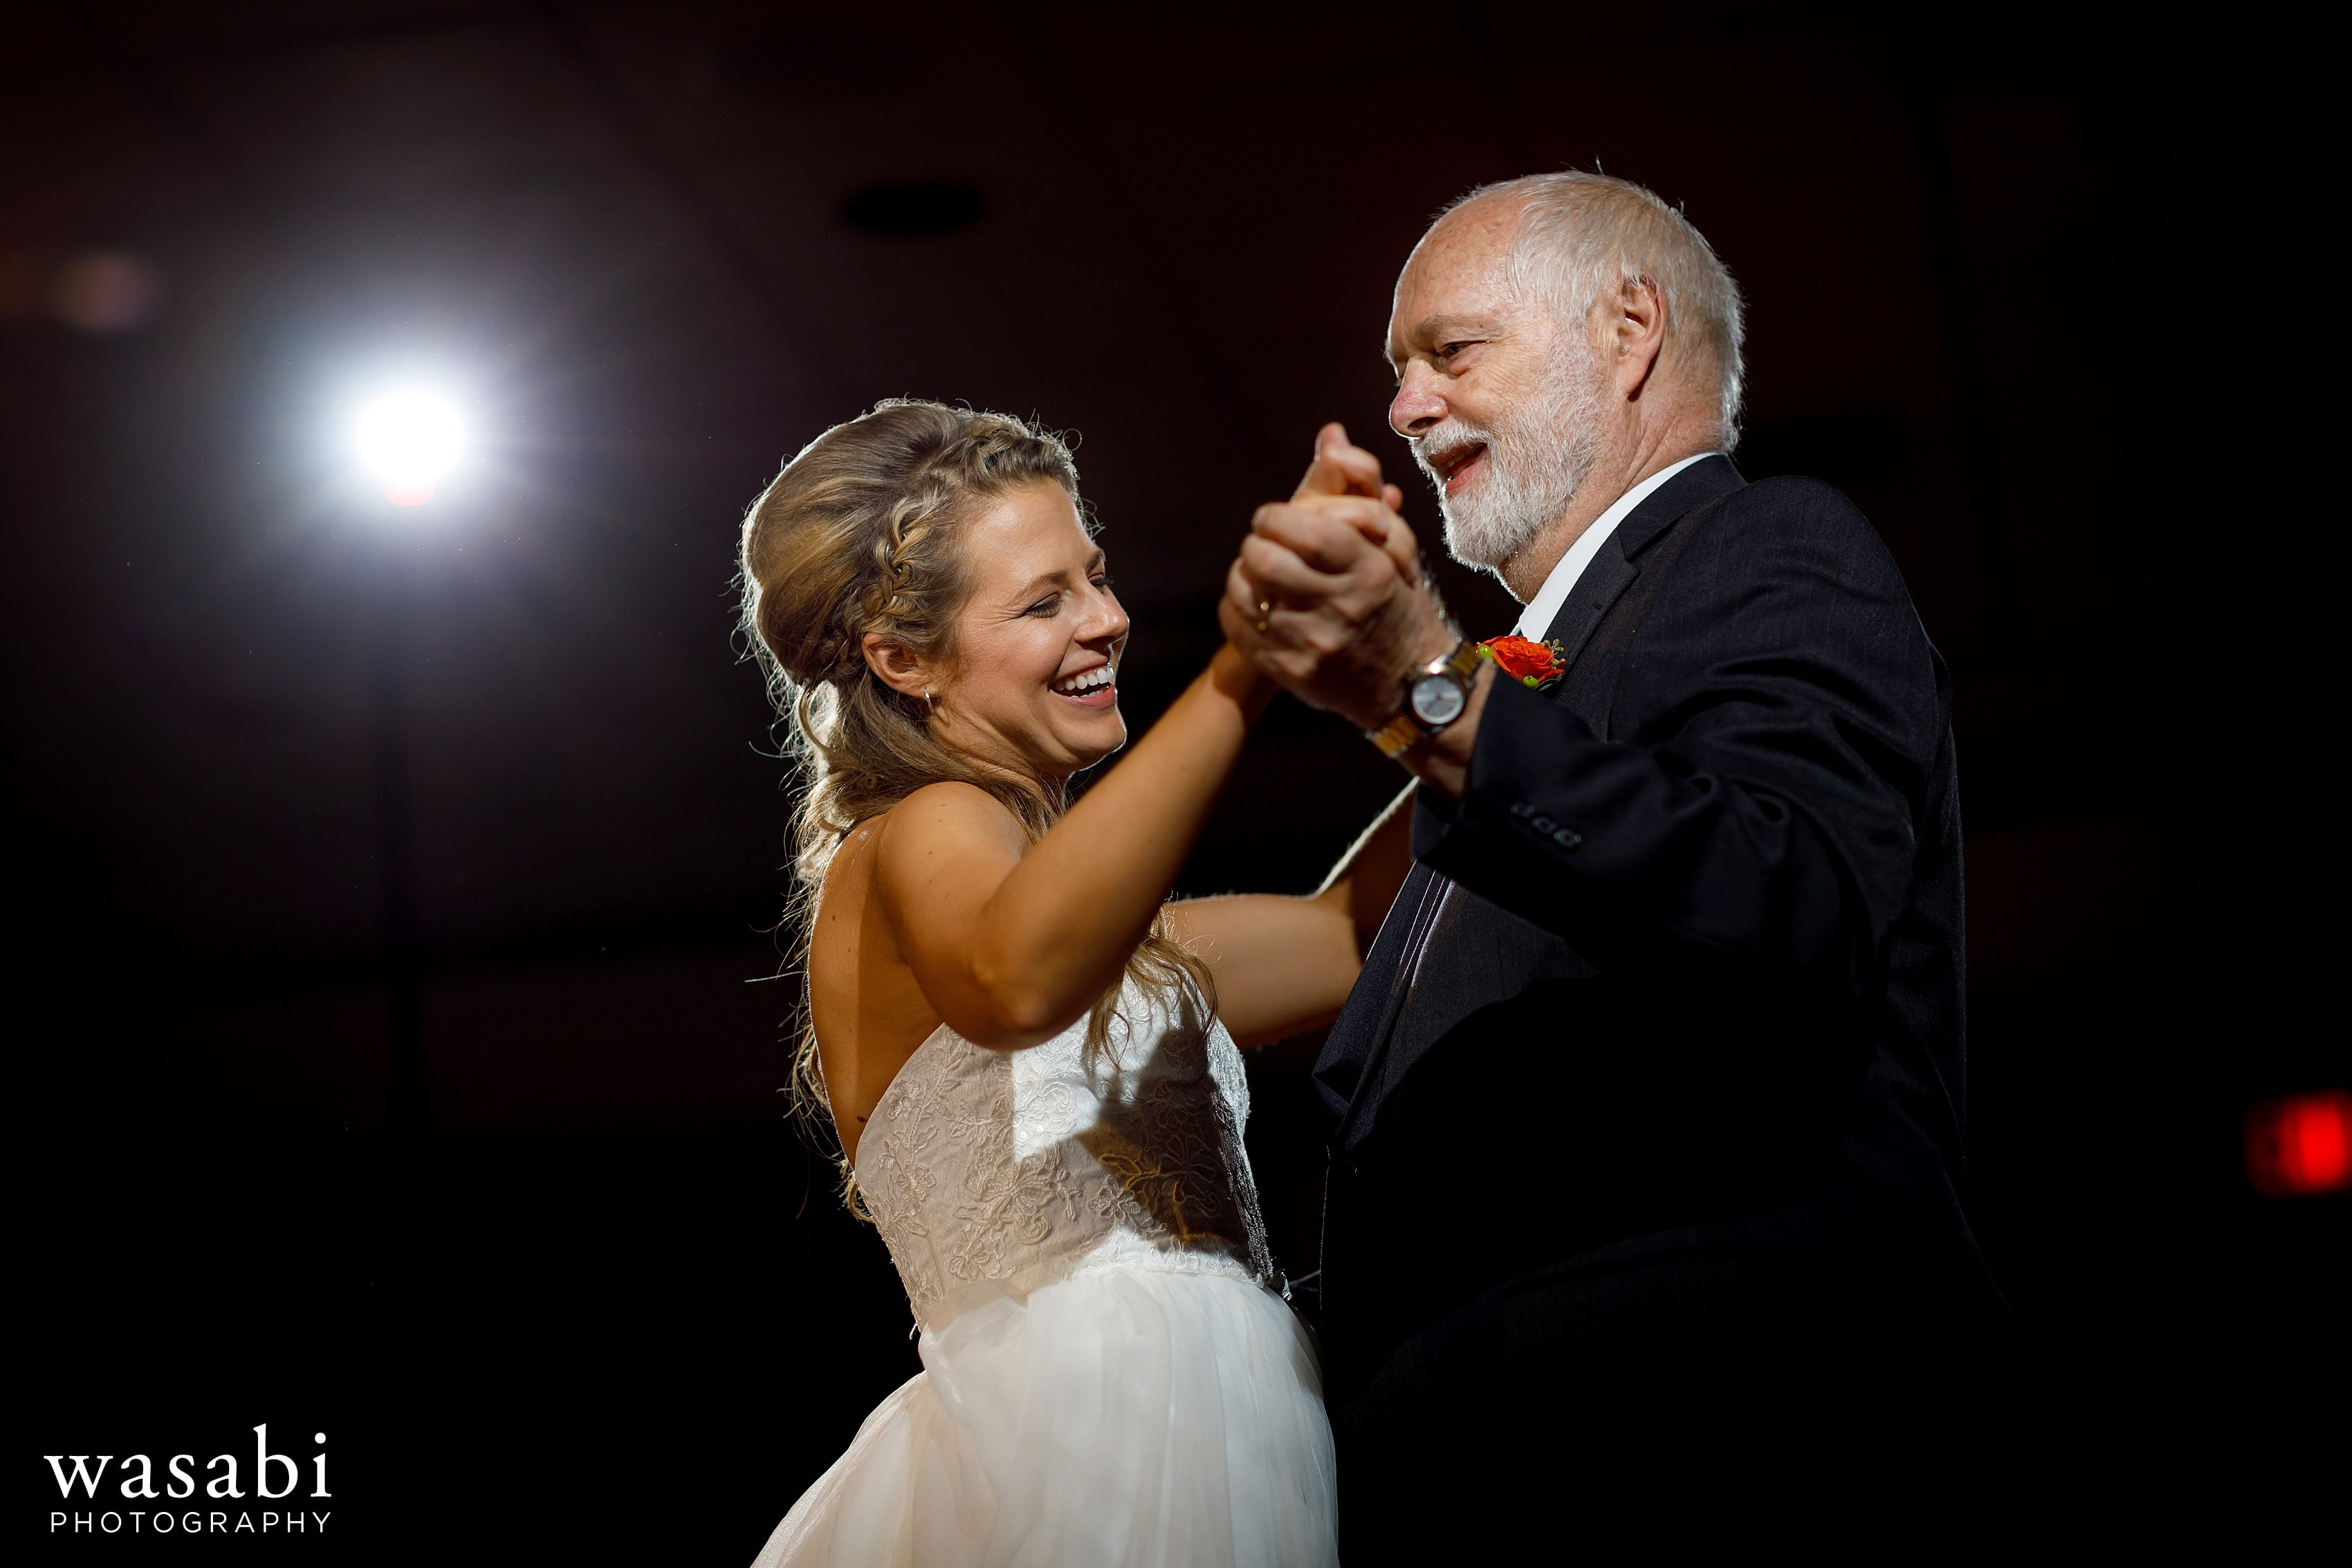 bride shares a first dance with her father during a wedding reception at Eberhard Center in downtown Grand Rapids